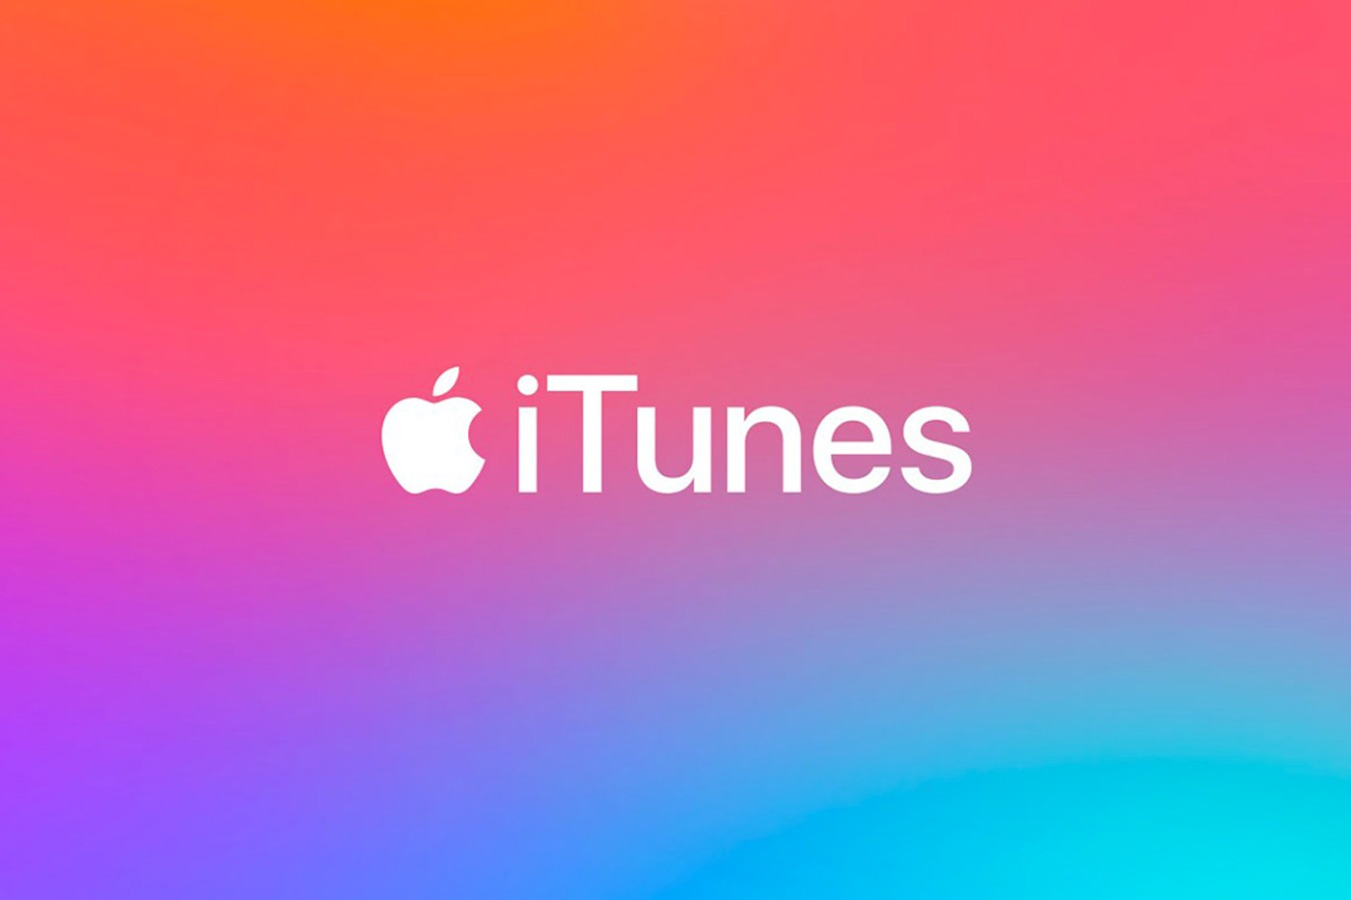 How to convert iTunes gift card balance to cash